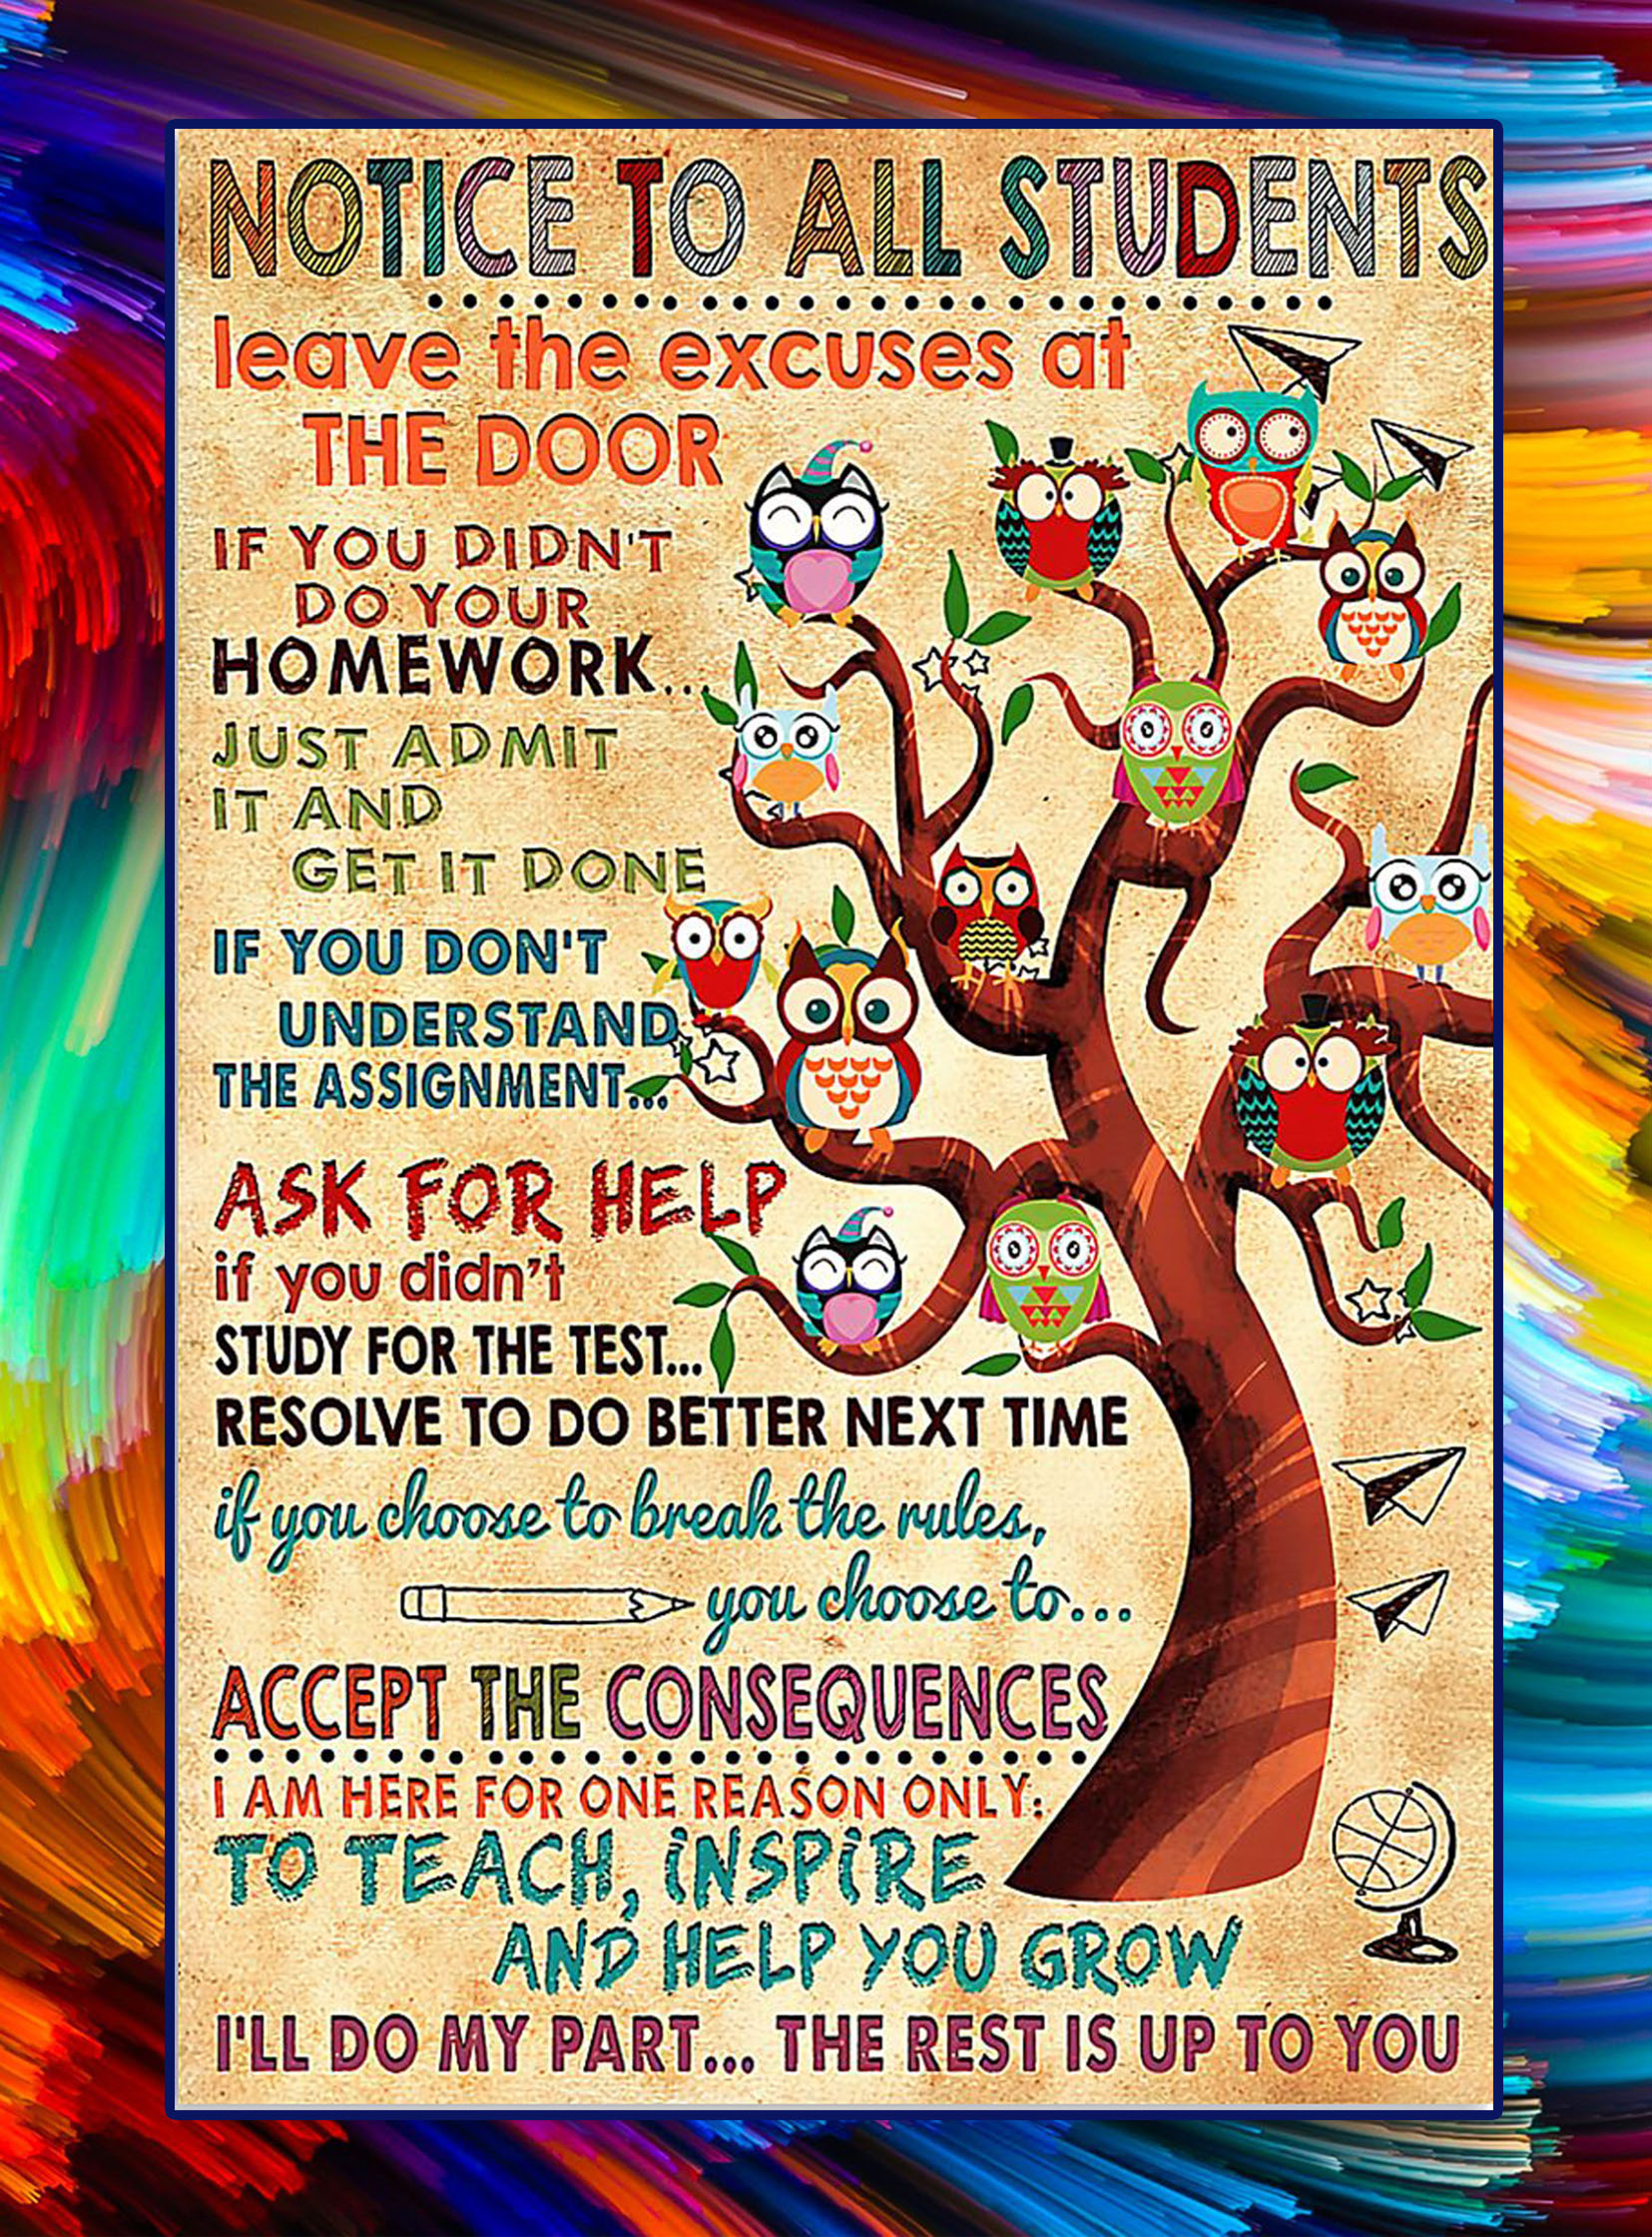 Notice to all students teacher owl poster - A4